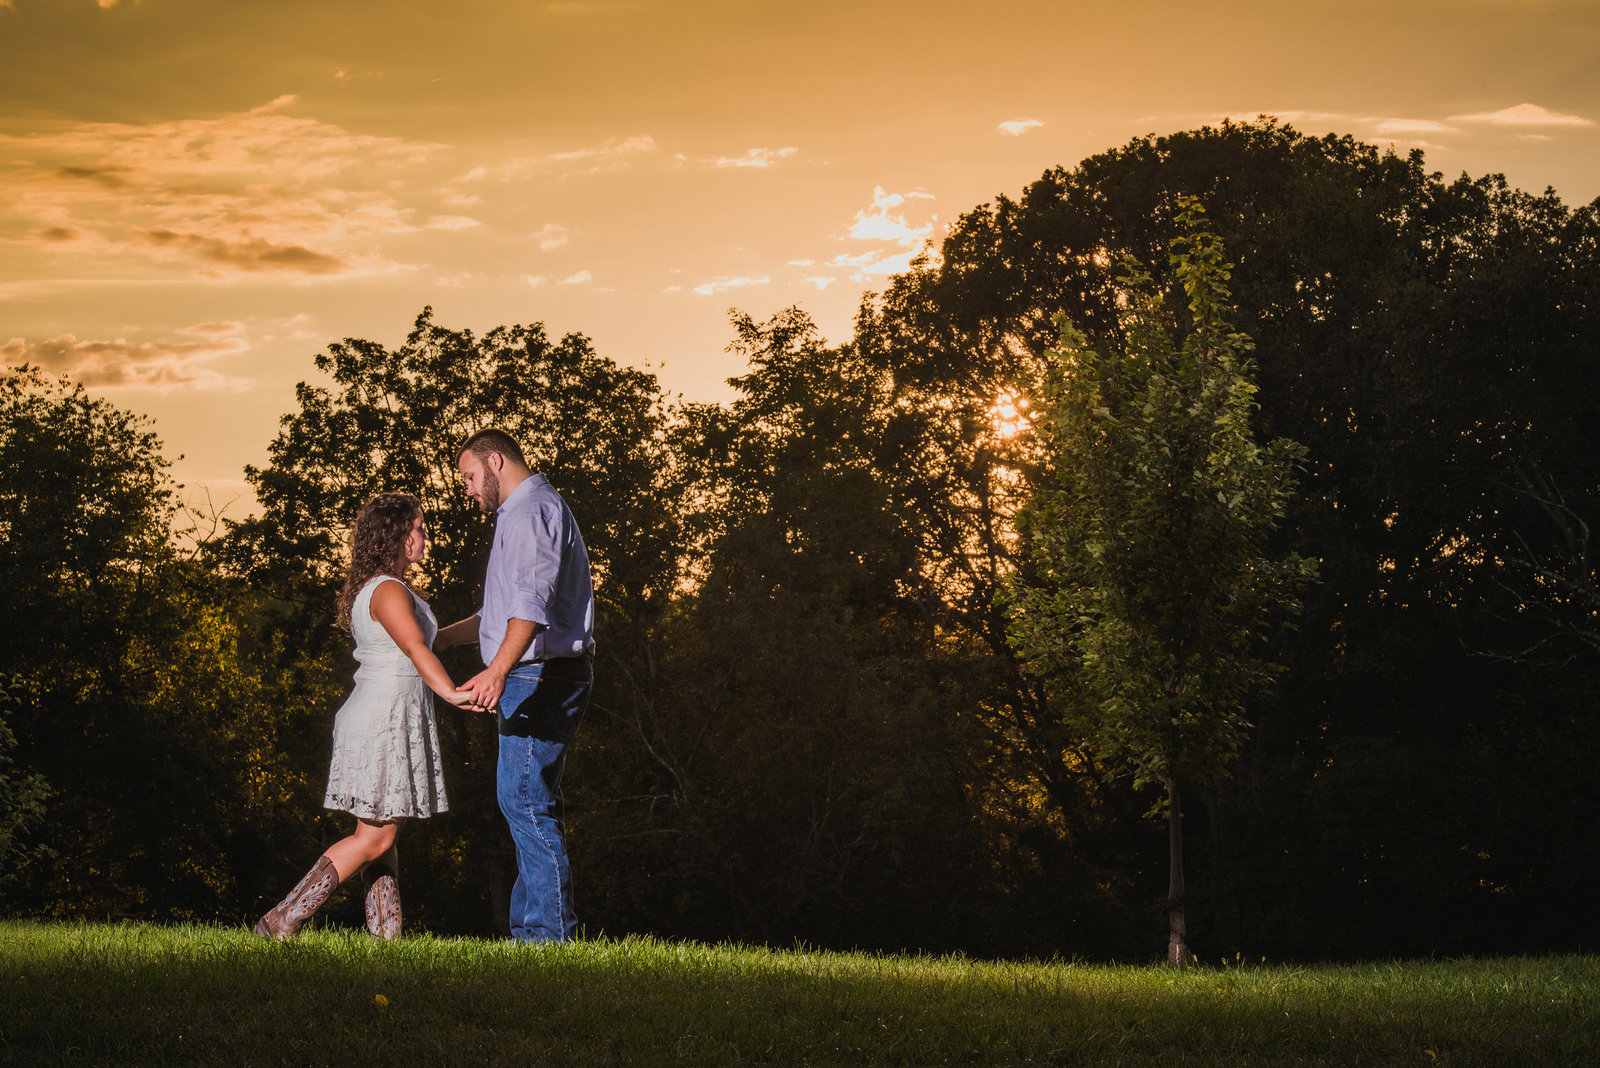 NJ_Rustic_Engagement_Photography158